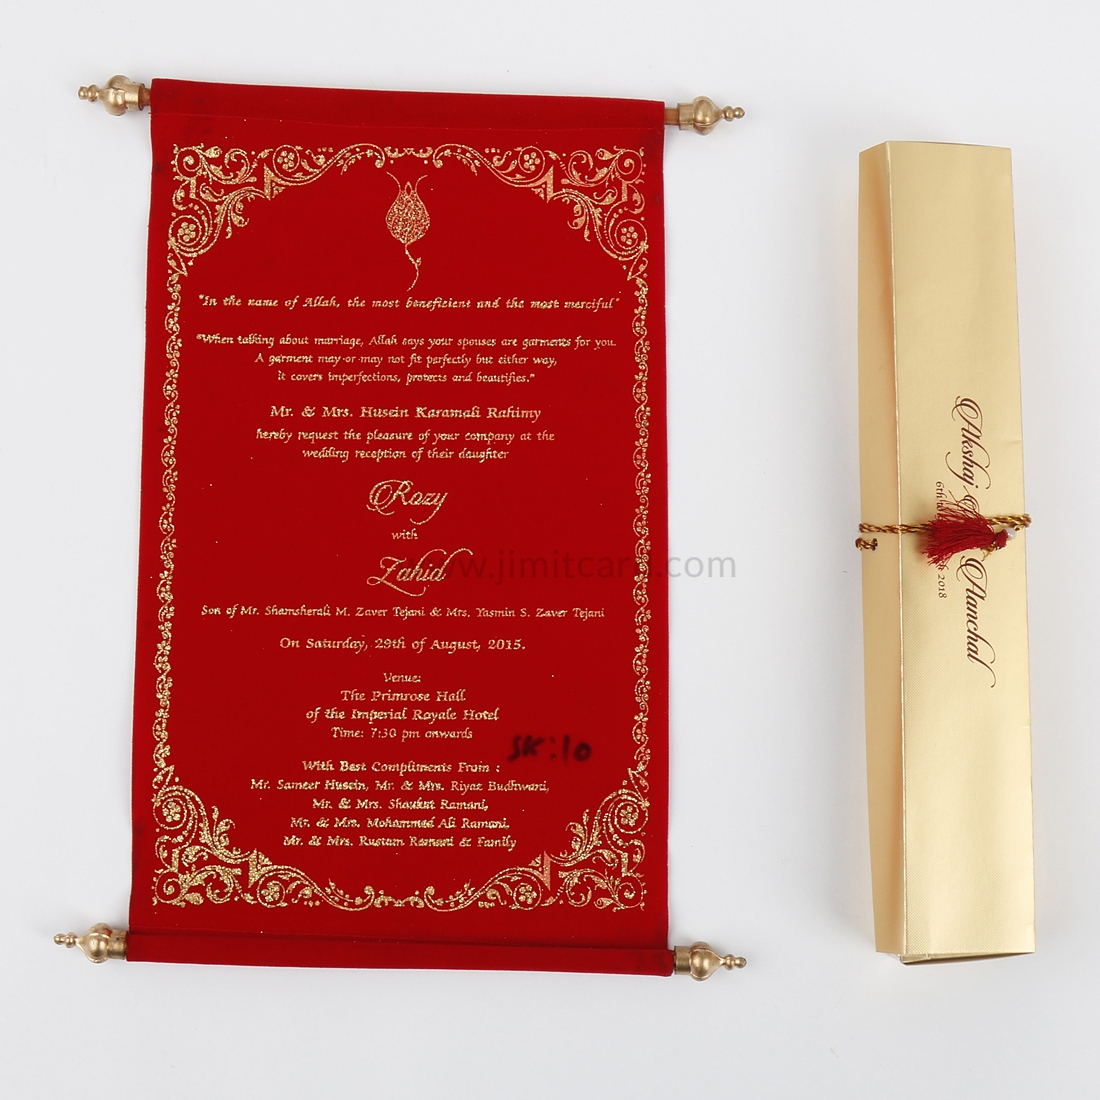 Elegant scroll wedding invitations in Red Velvet-0